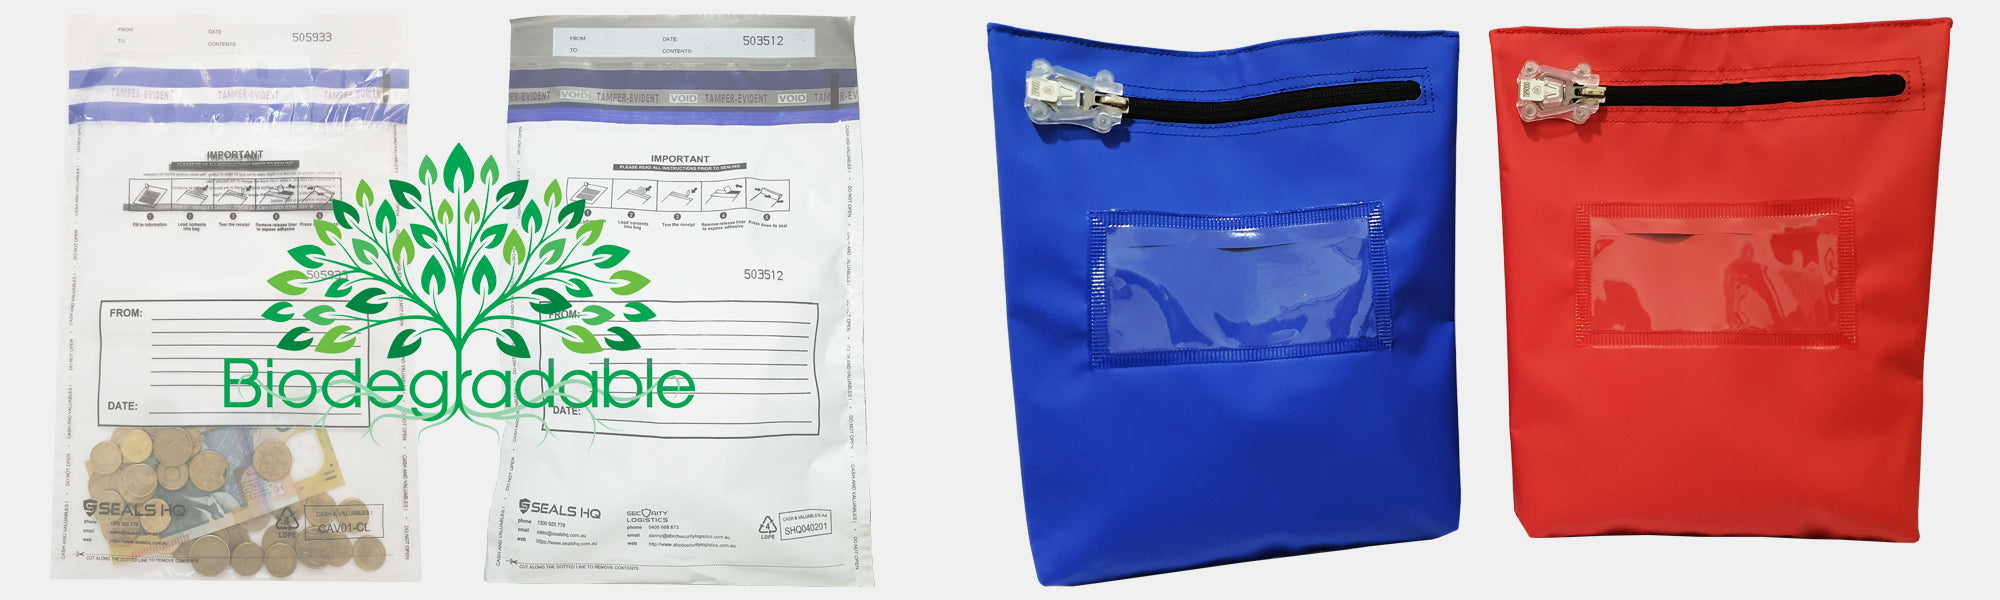 Seals HQ Security Bags Main Image